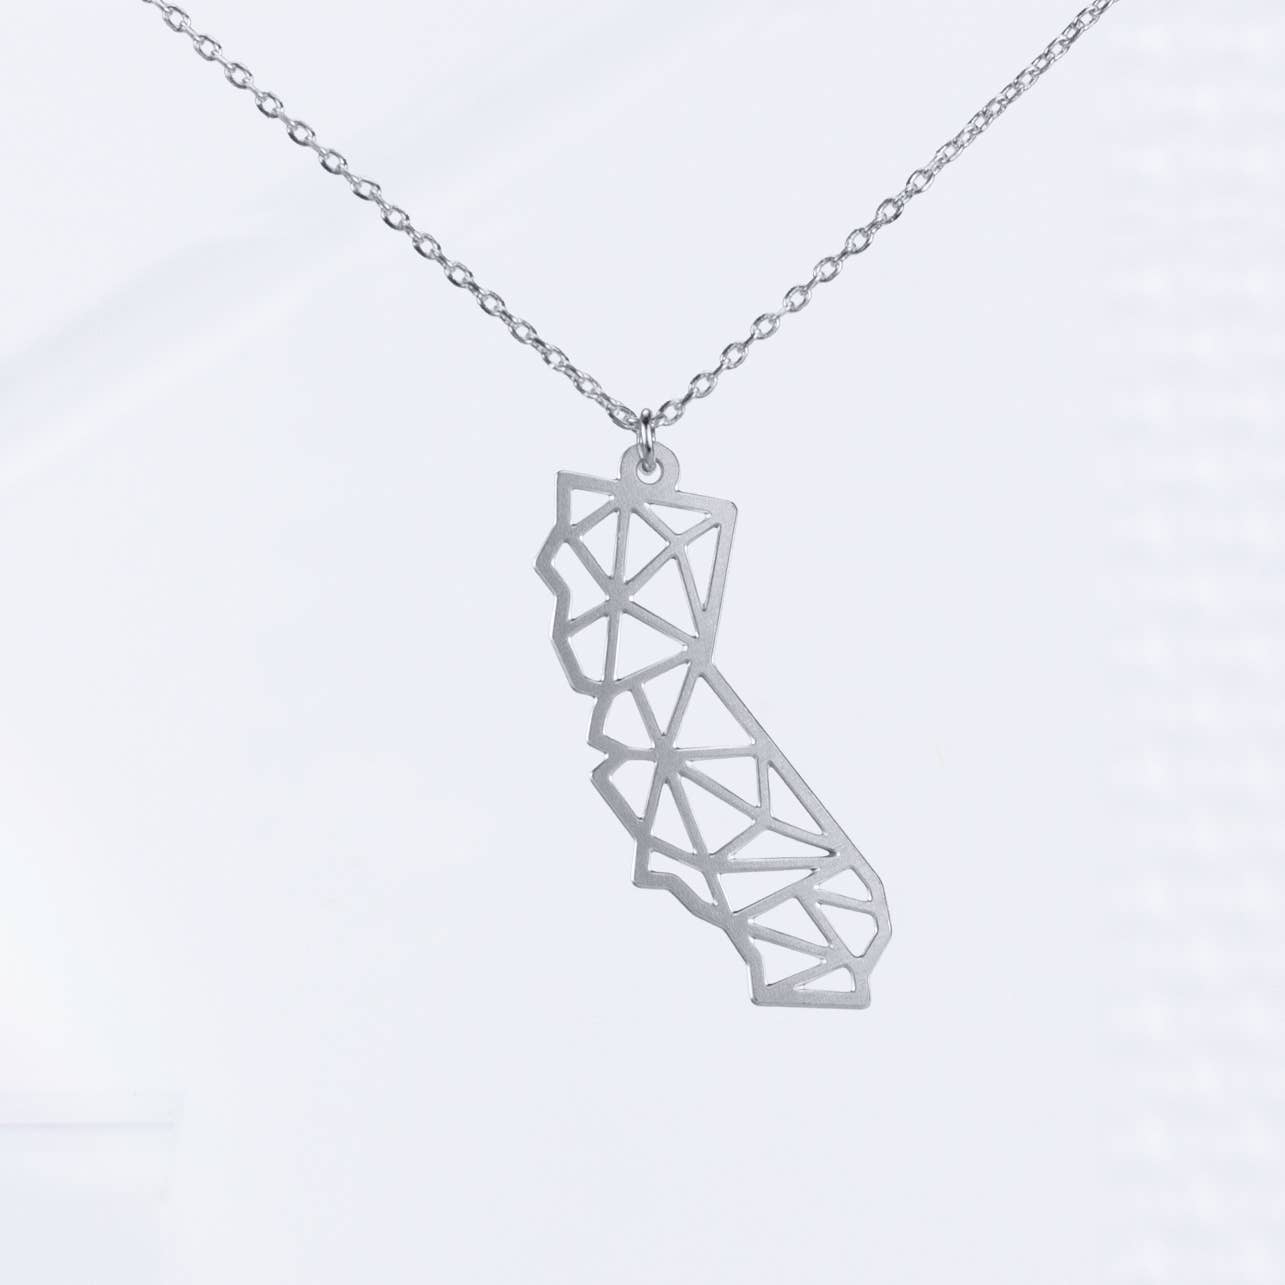 California Geometric Necklace